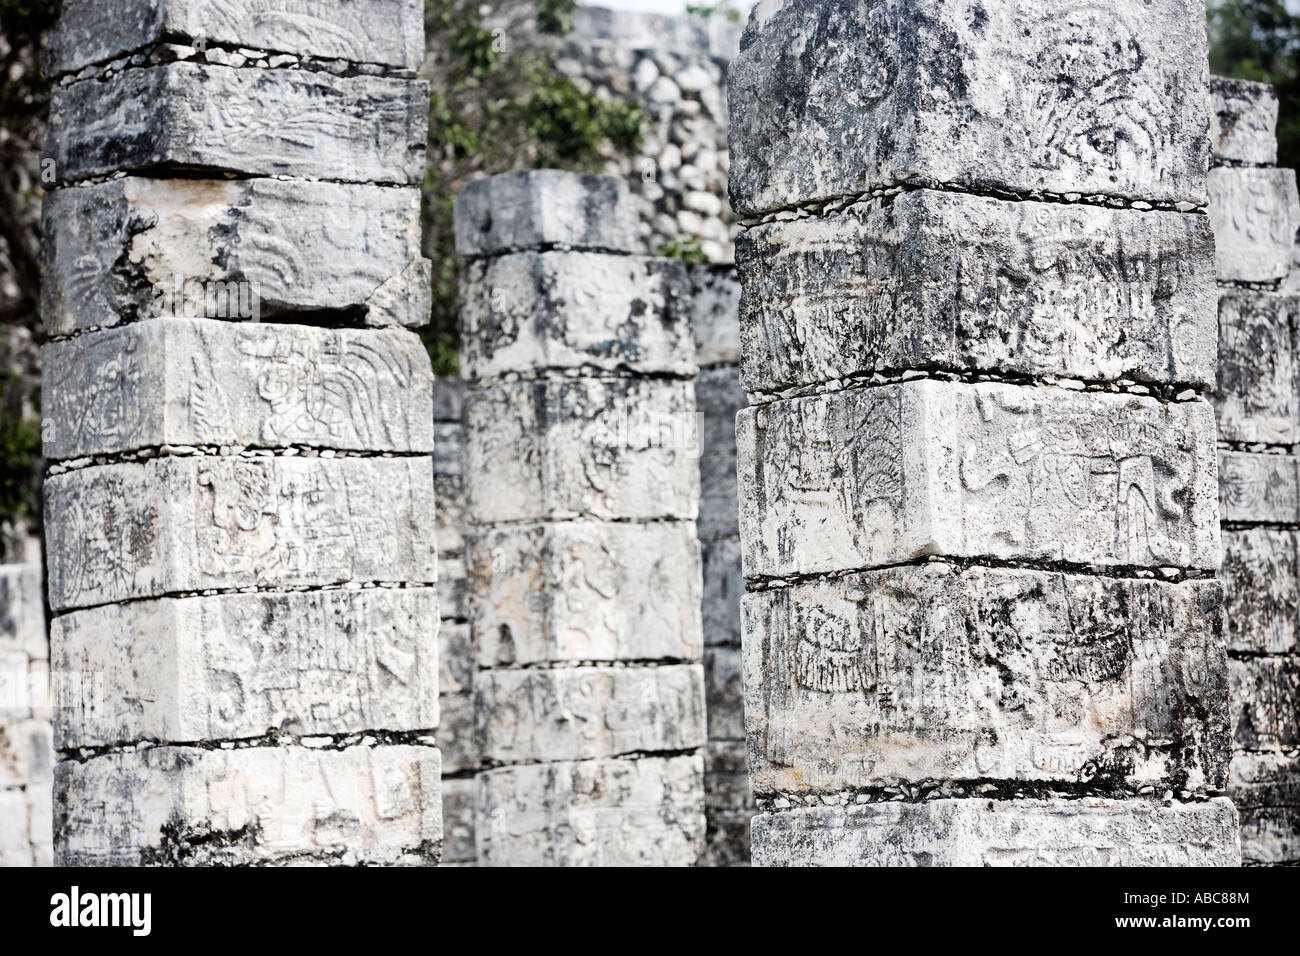 temple of the jaguar warrior of Chichen Itza in the yucatan was a Maya city and one of the greatest religious center - Stock Image